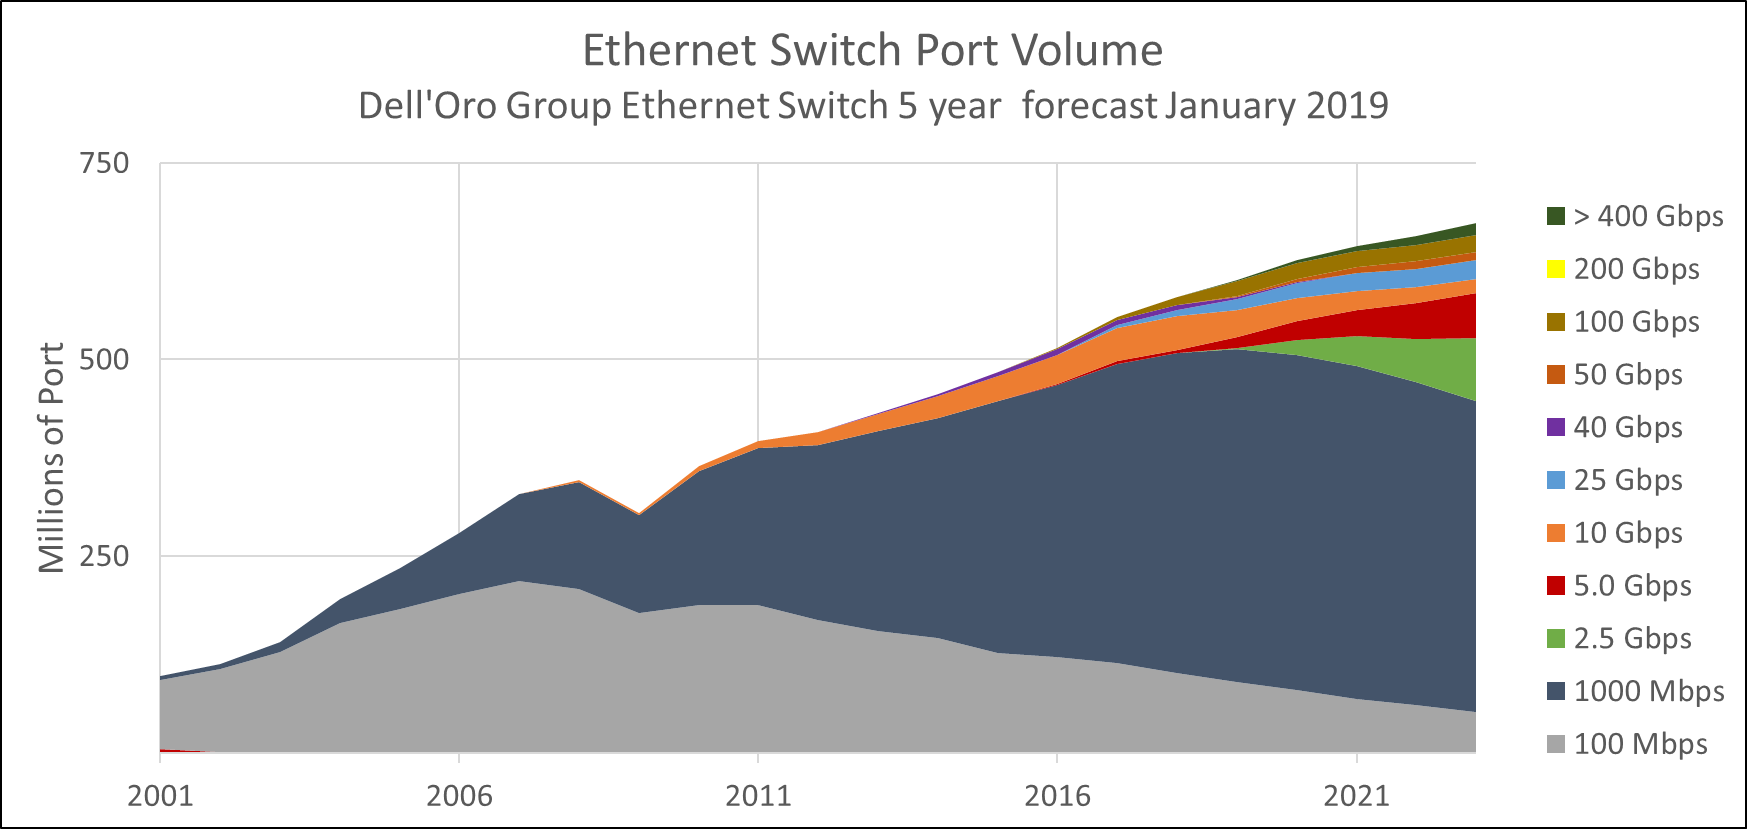 Ethernet Switch Port Volume - 5 year forecast from January 2019